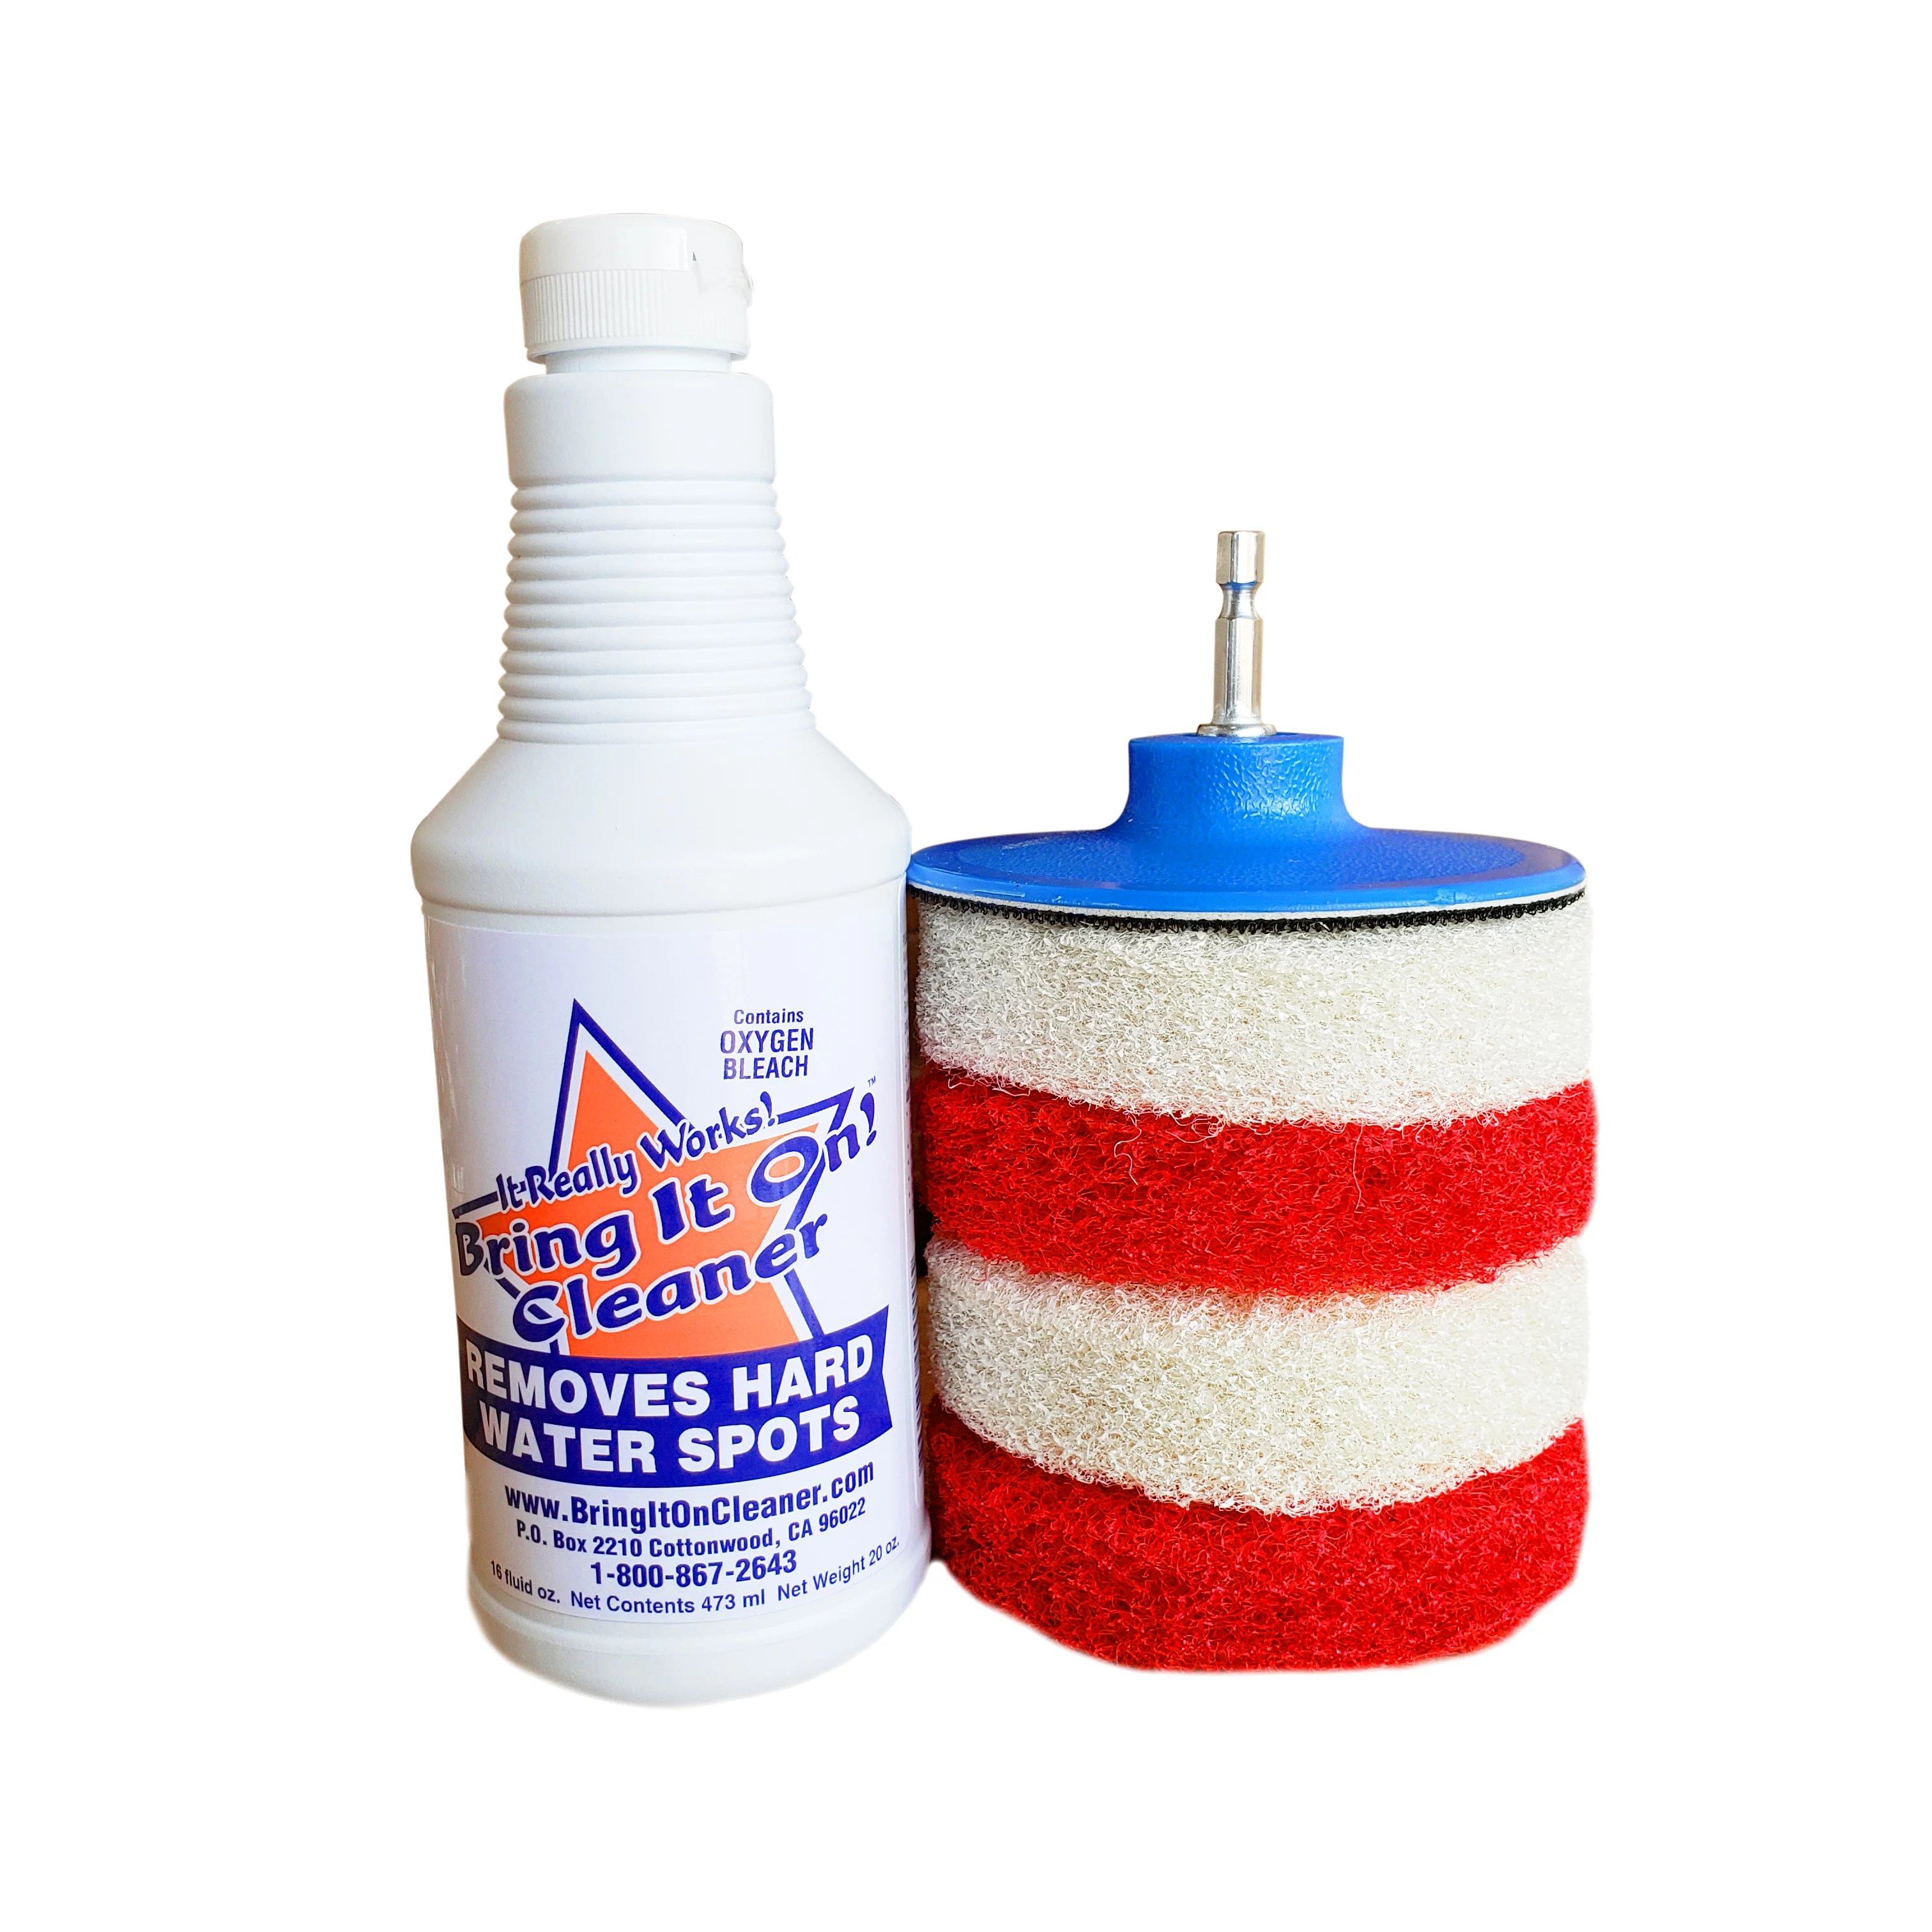 bring it on cleaner glass shower door cleaner mold and mildew remover clean hard water stain tile grout windows tubs plus scrubbing drill pads